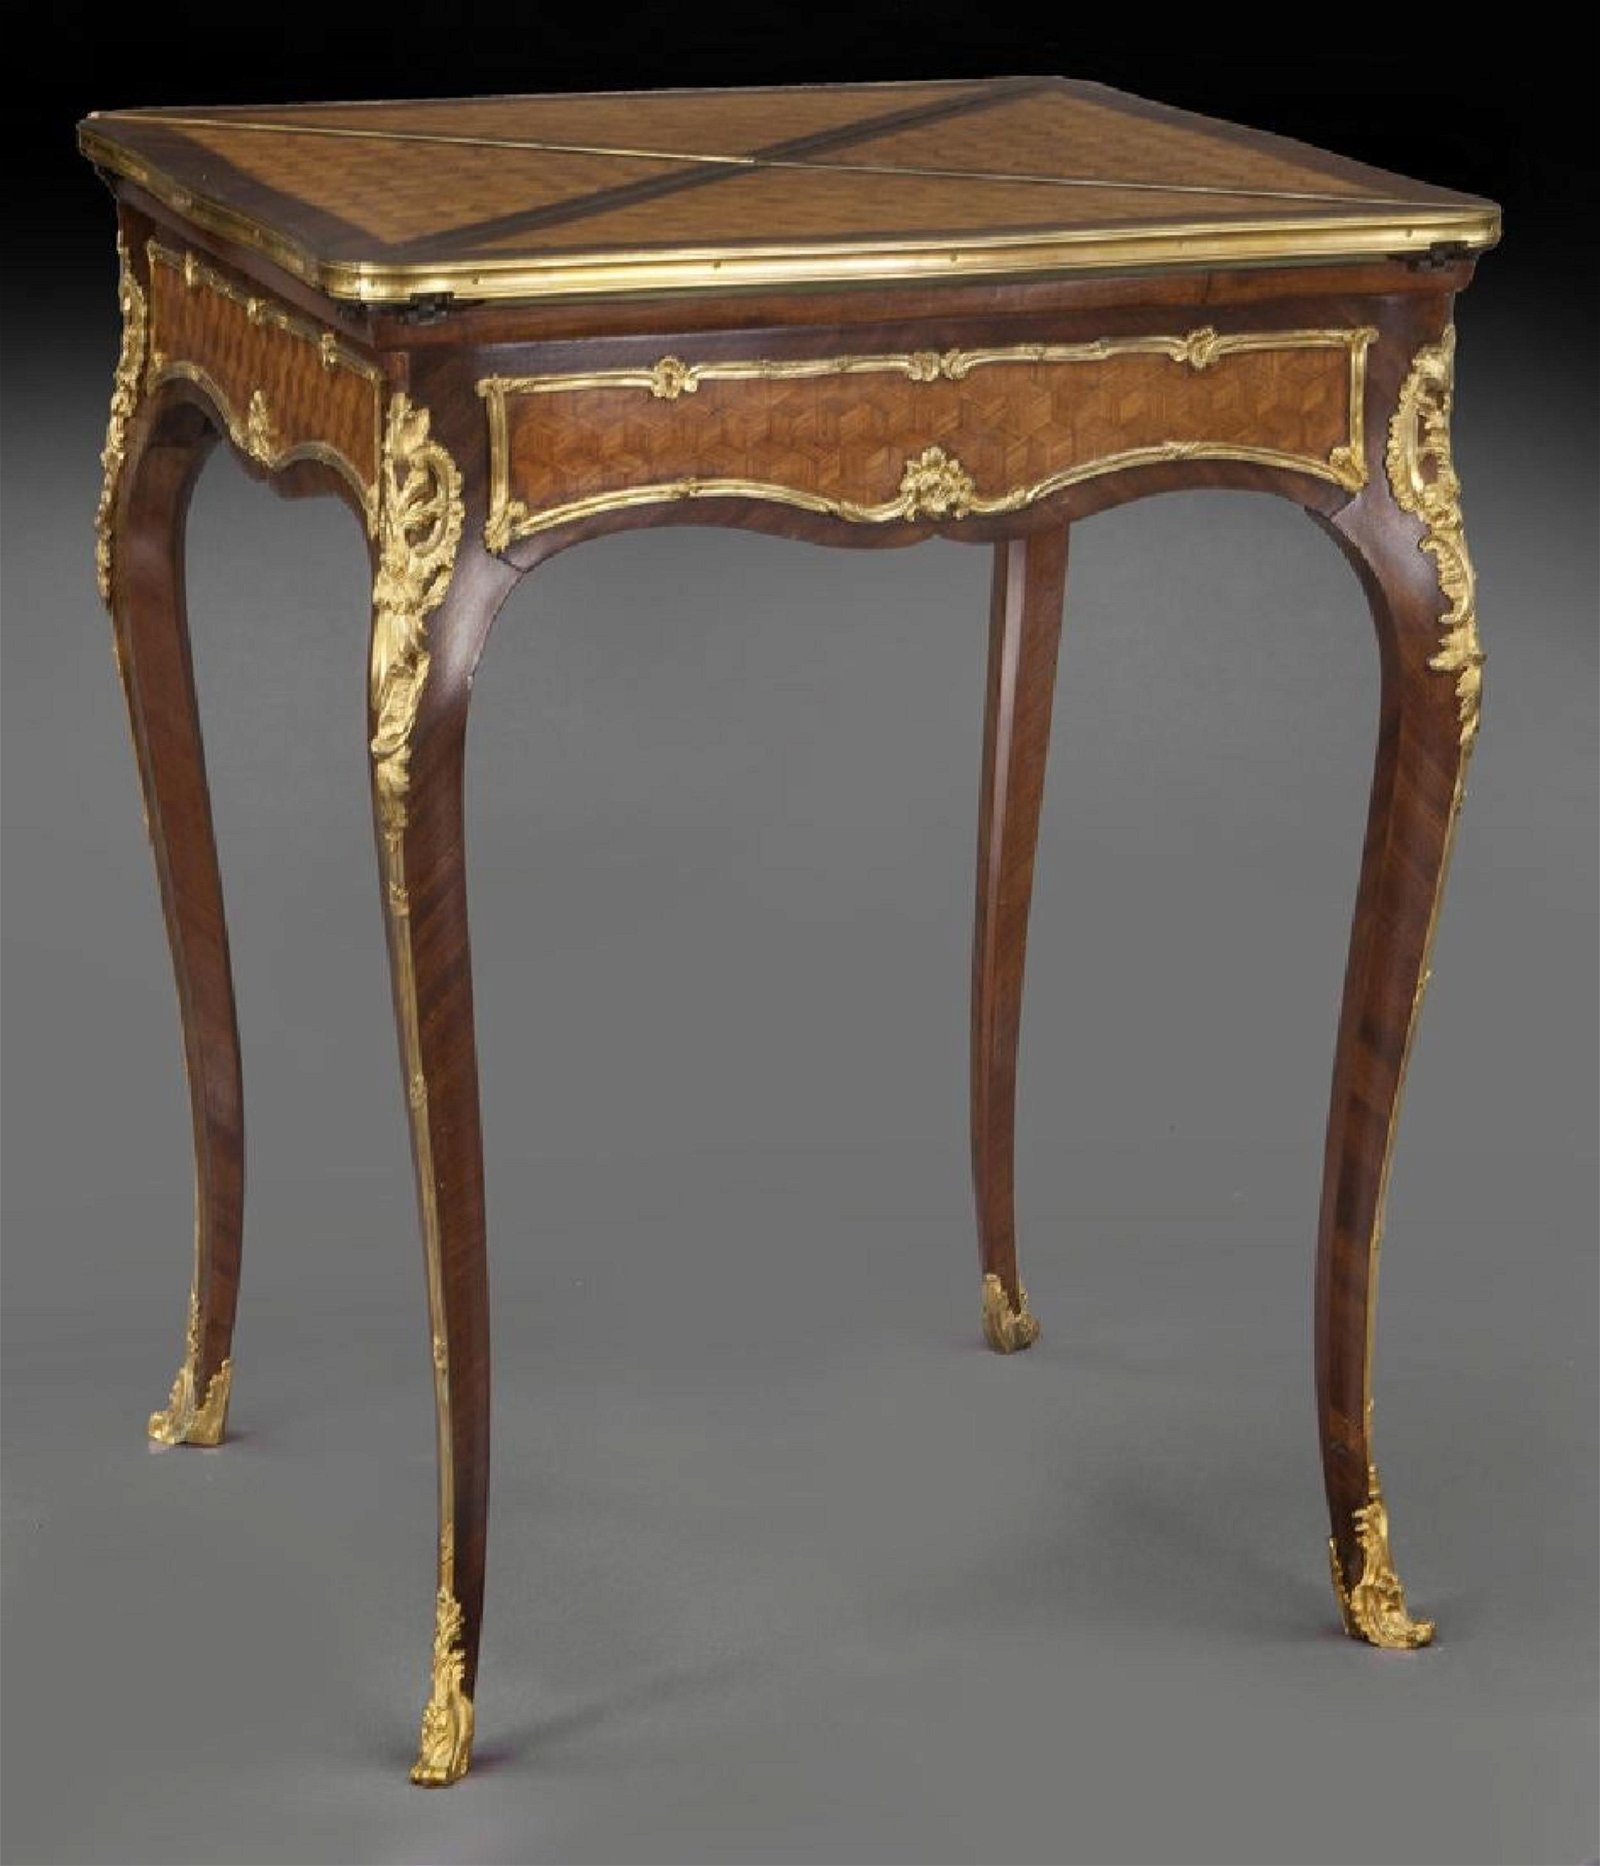 19th C. F. Linke Kingwood Envelope Table w/ Bronze